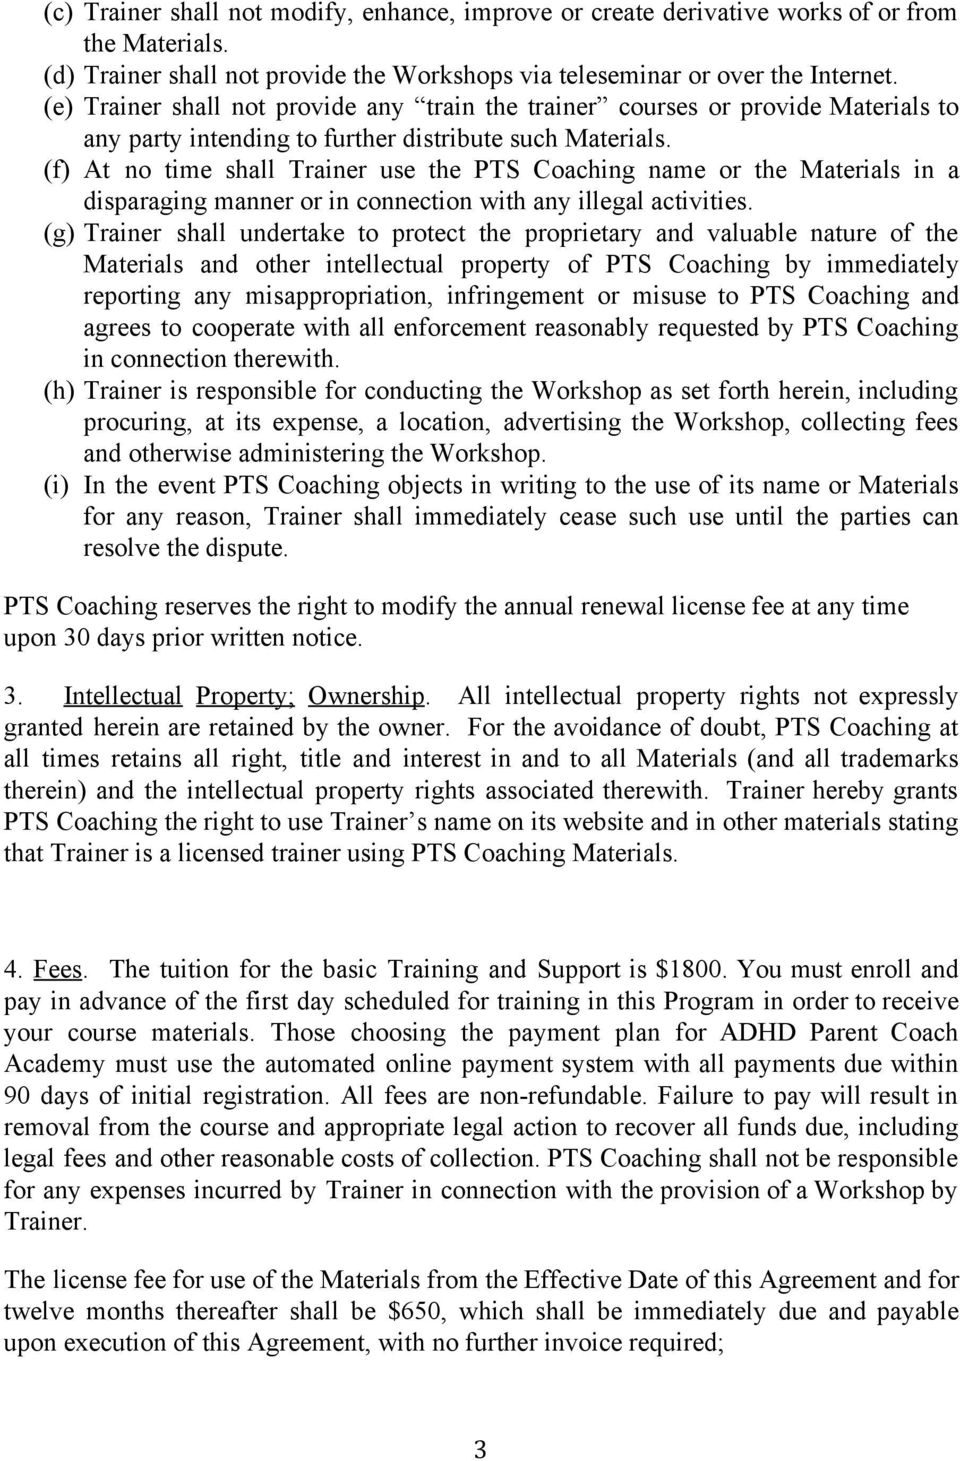 (f) At no time shall Trainer use the PTS Coaching name or the Materials in a disparaging manner or in connection with any illegal activities.